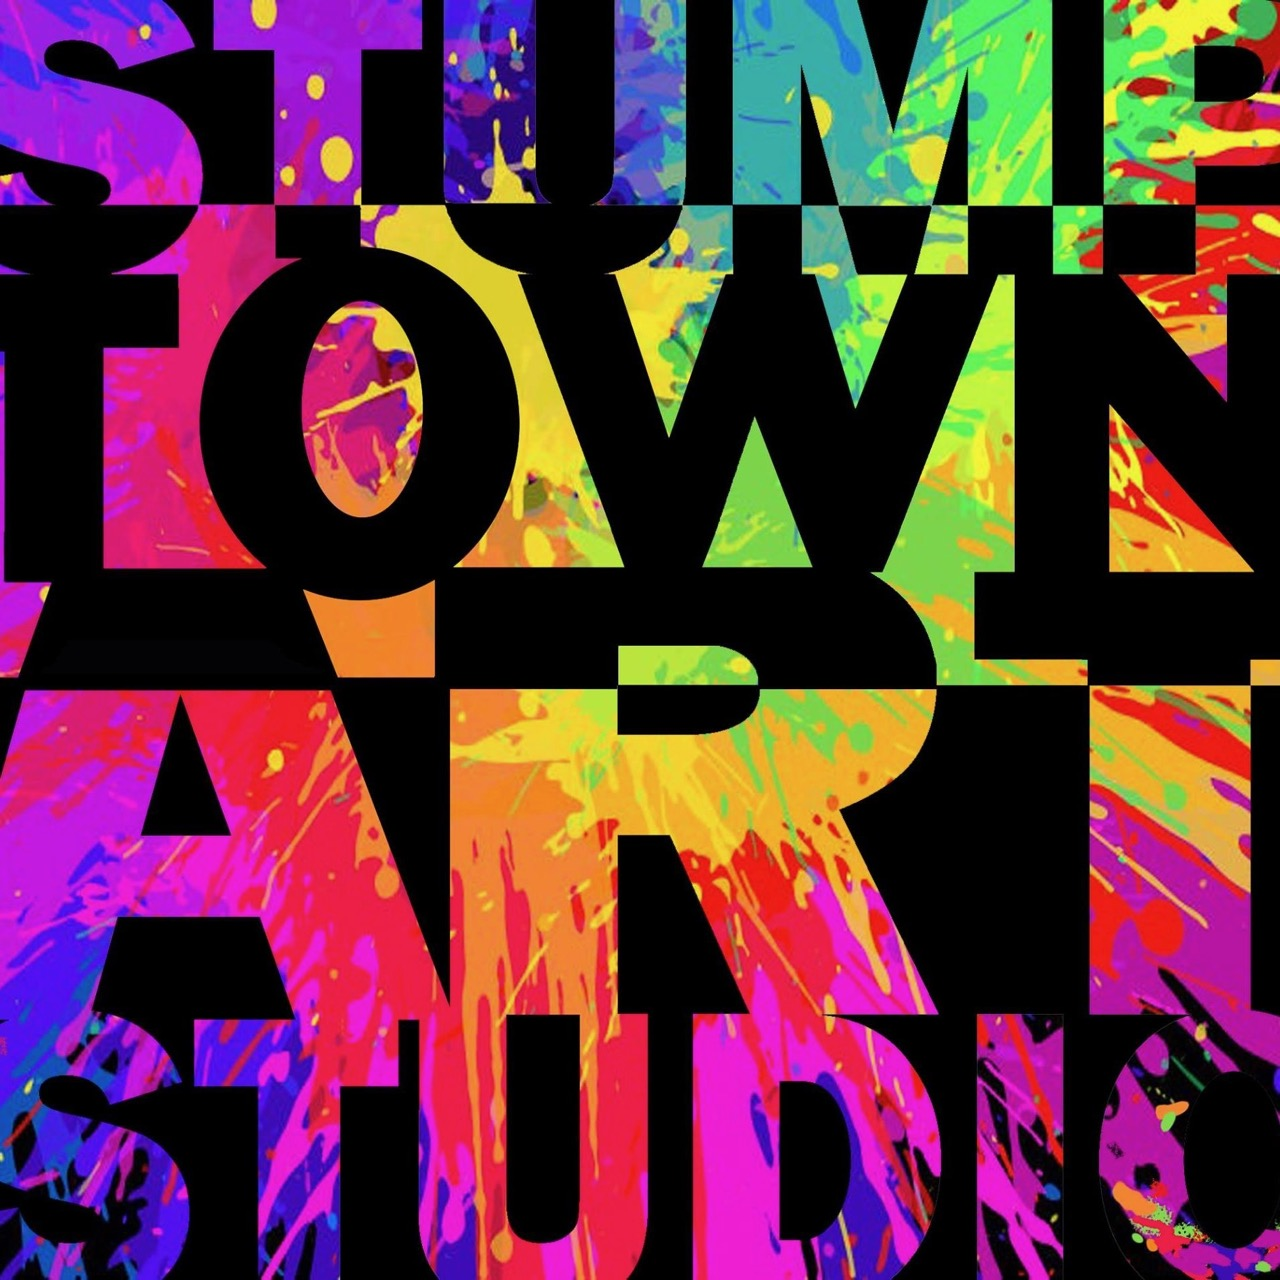 8. Stumptown Art Studio